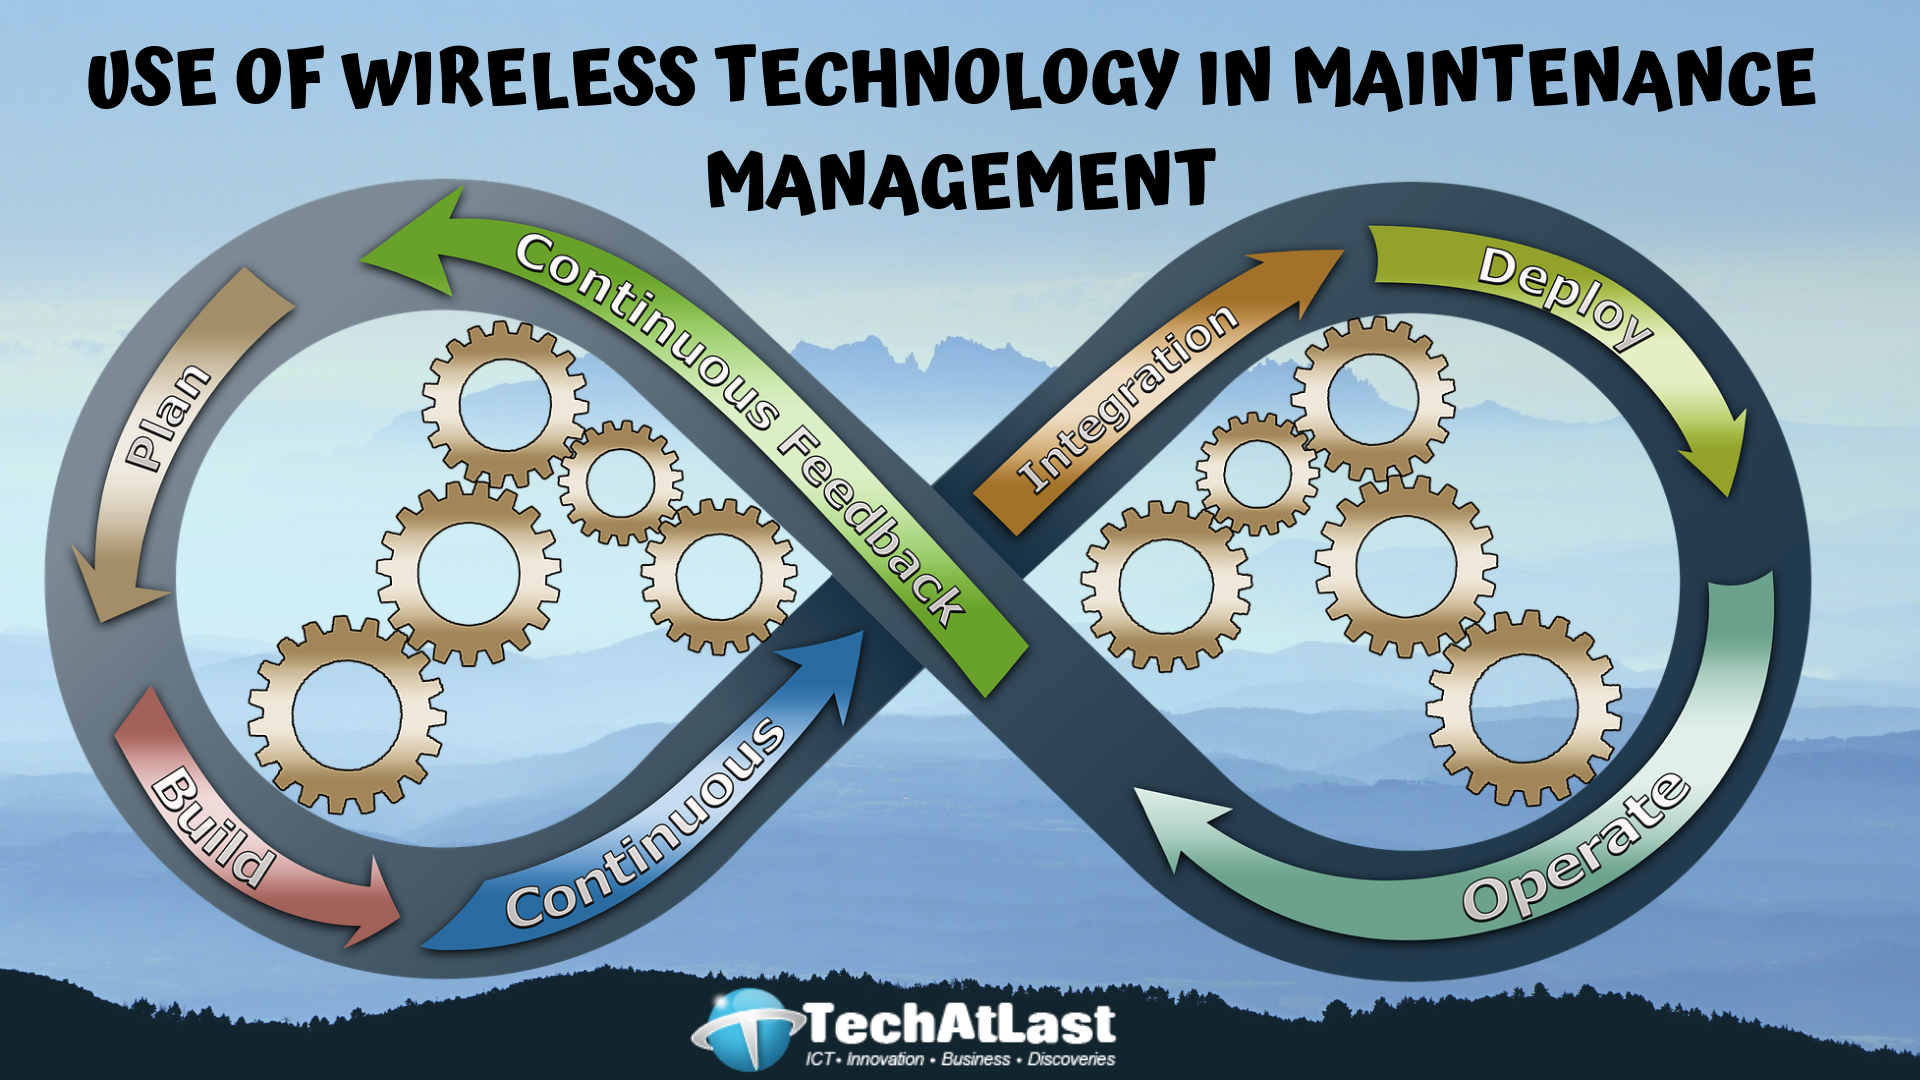 The Use of Wireless Technology In Maintenance Management